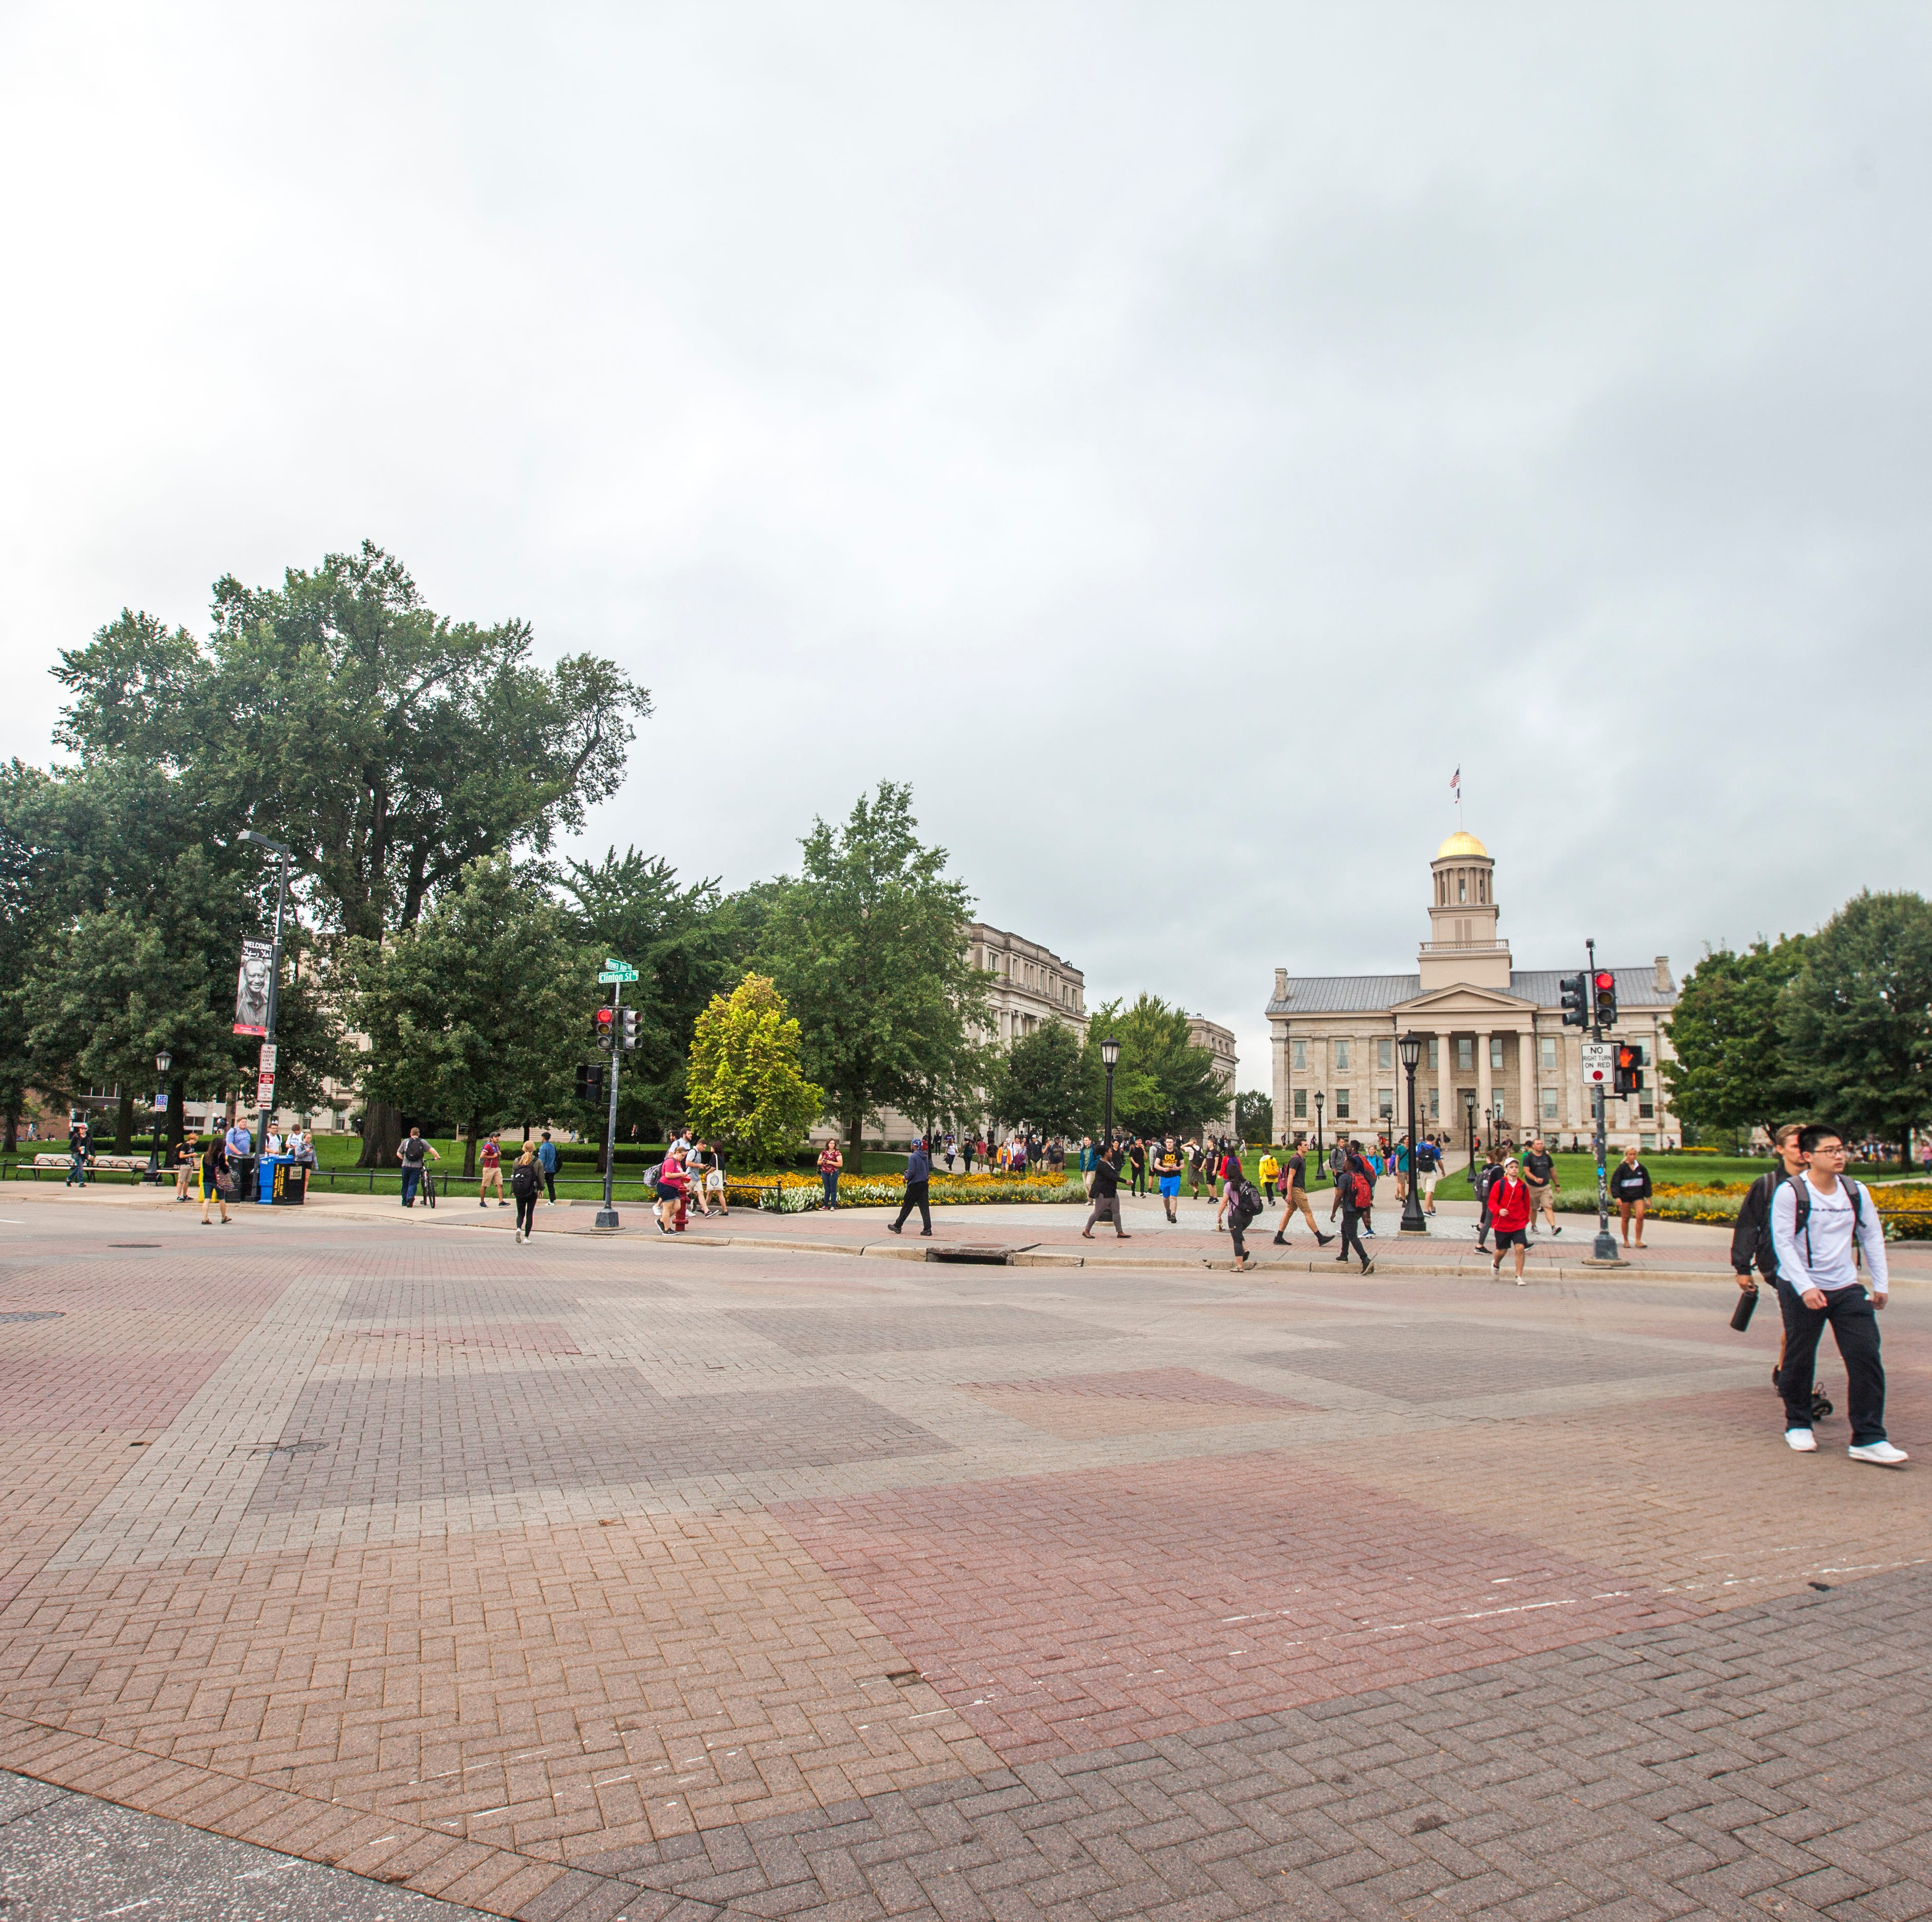 Sexual assault reported at University of Iowa residence hall